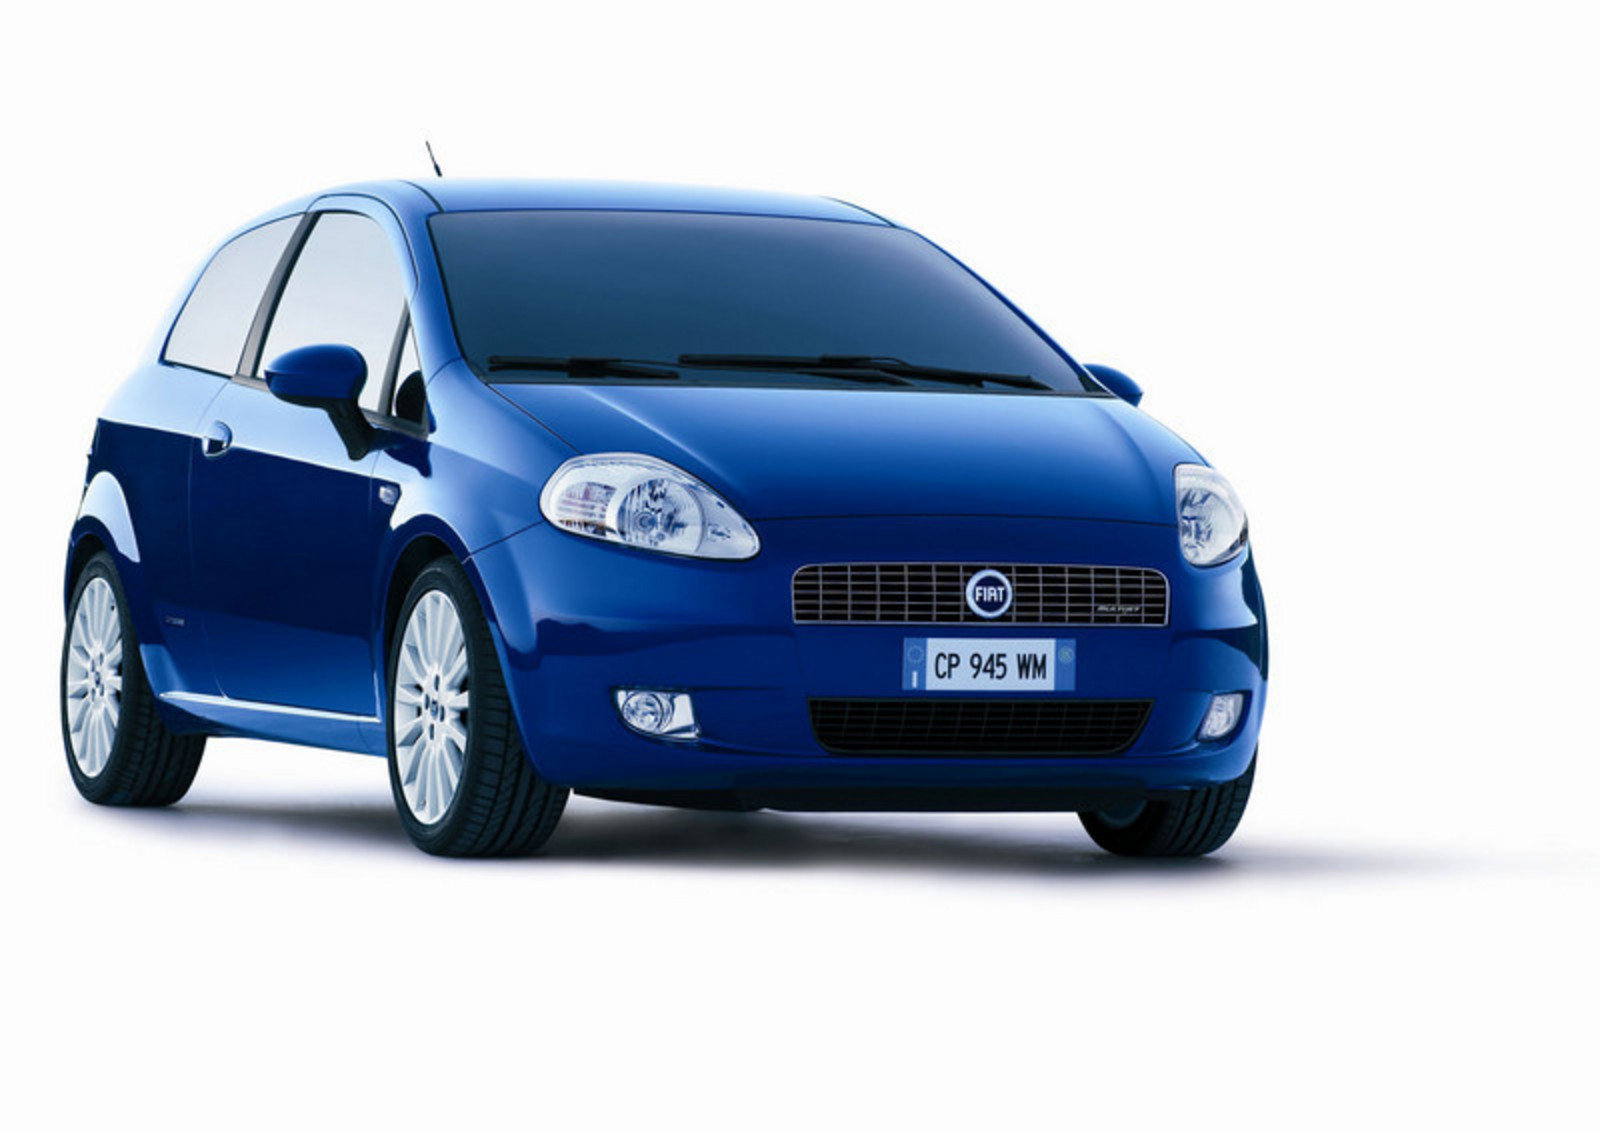 2007 fiat grande punto picture 47397 car review top speed. Black Bedroom Furniture Sets. Home Design Ideas